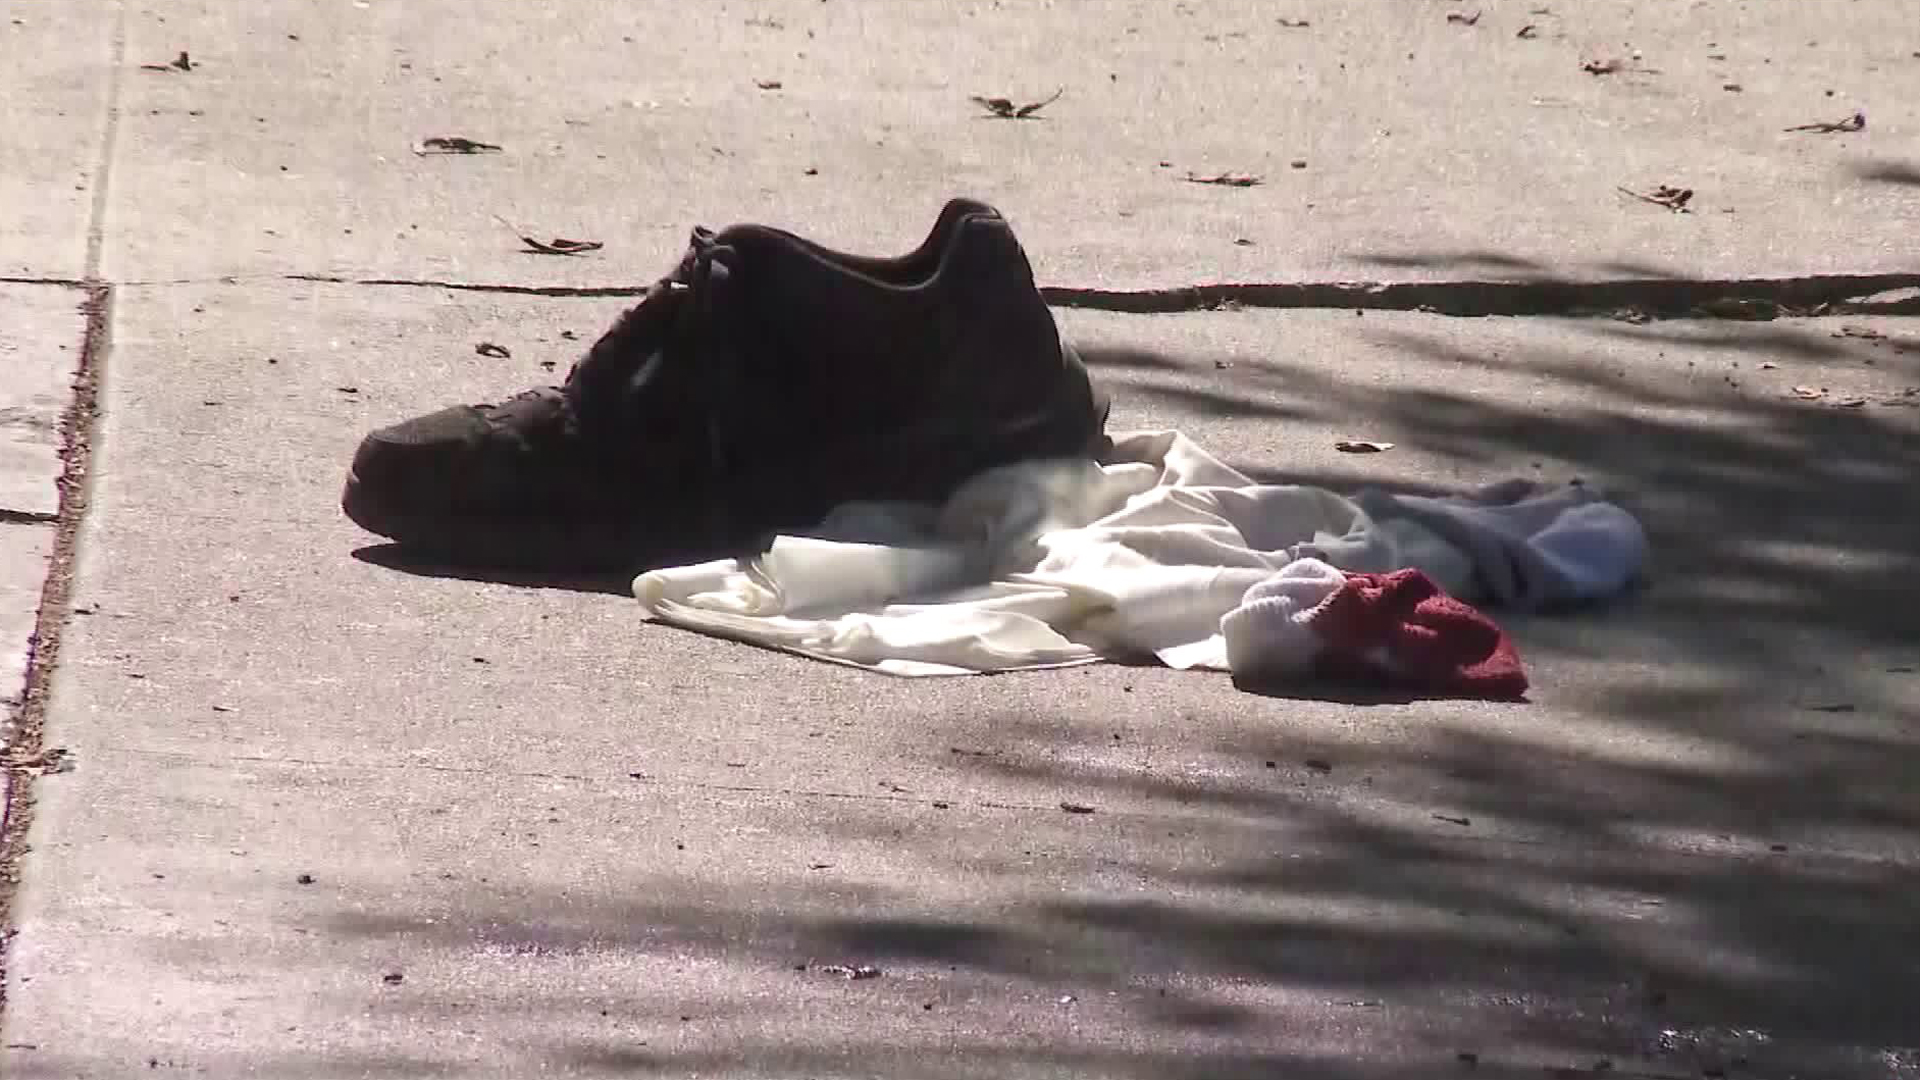 Discarded clothing lies on the sidewalk after a stabbing in the South Park area of South Los Angeles on Oct. 23, 2019. (Credit: KTLA)